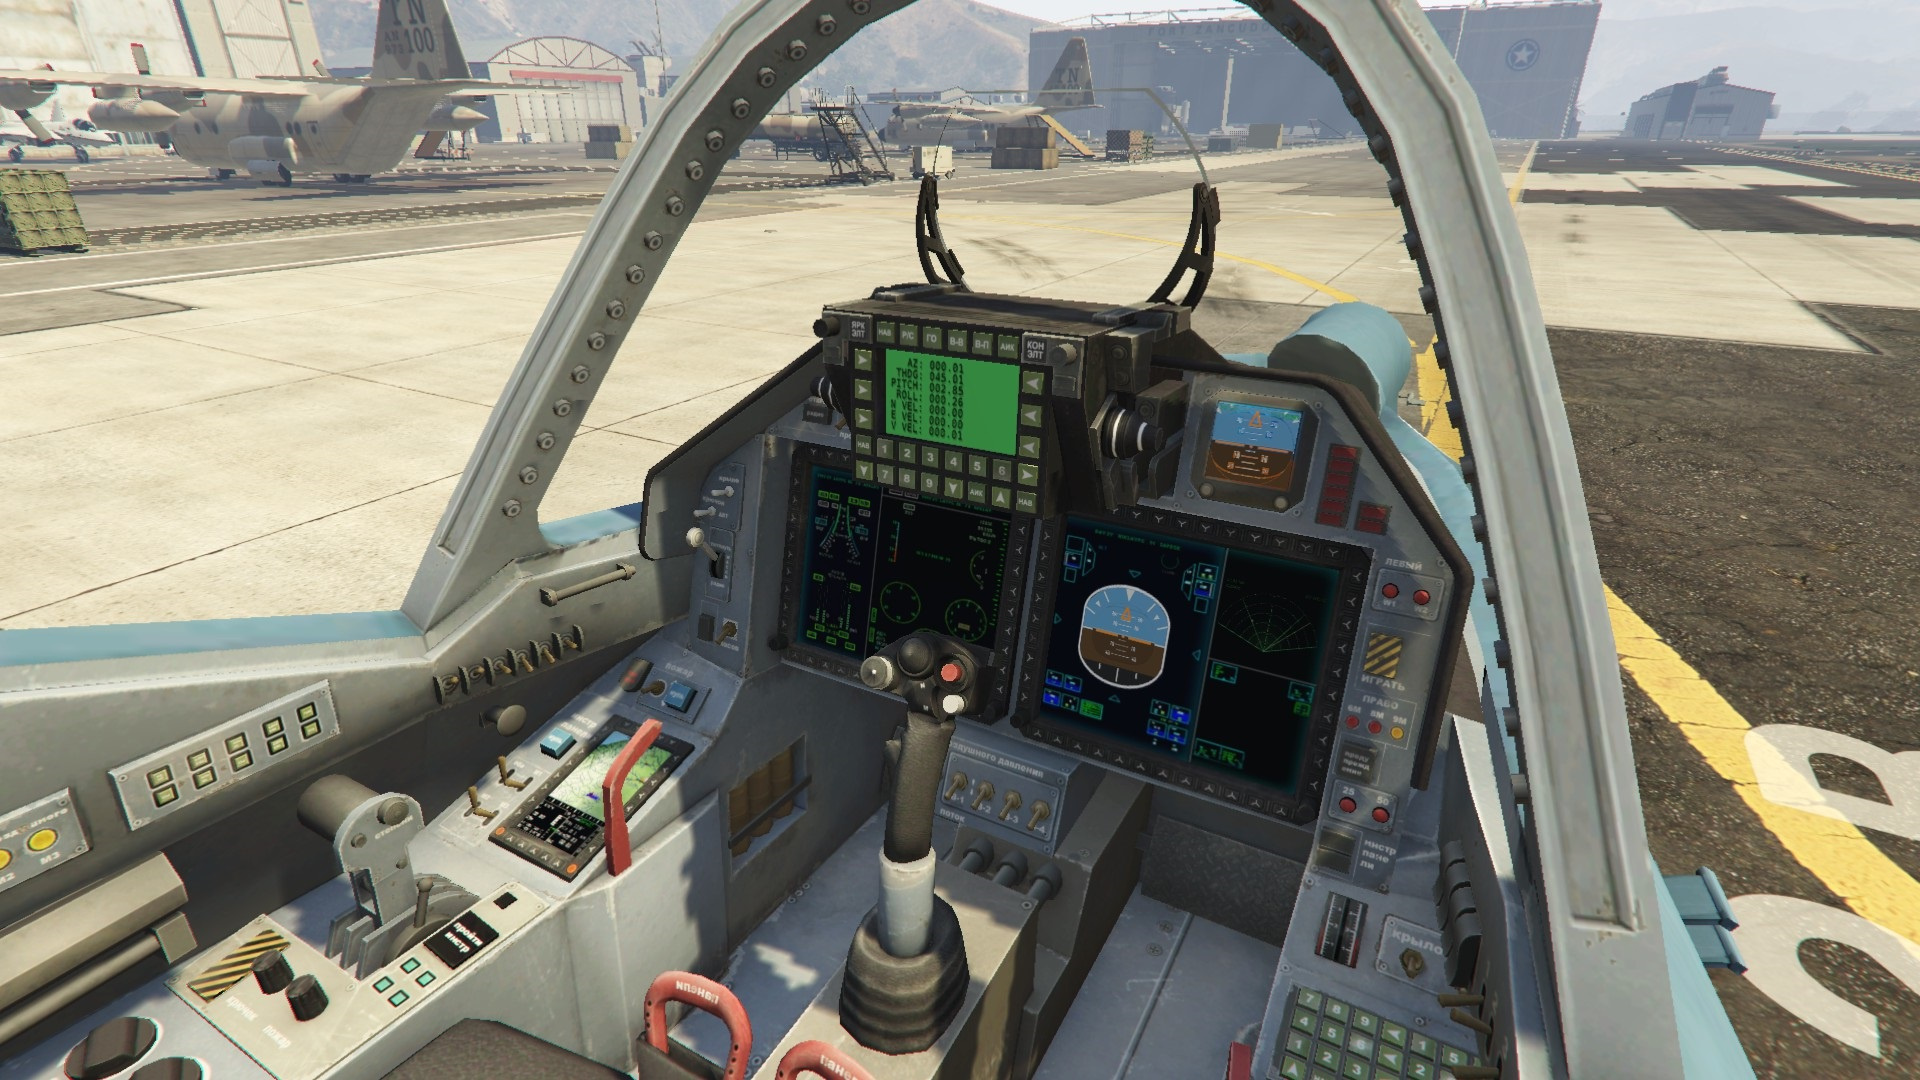 helicopter mod with Sukhoi T 50 Pak Fa on Choose Rc Transmitter Quadcopter moreover 1731335 as well How To Get A Plane In Gta Vice City Pc Cheats in addition Awesome Car Design moreover 52148.